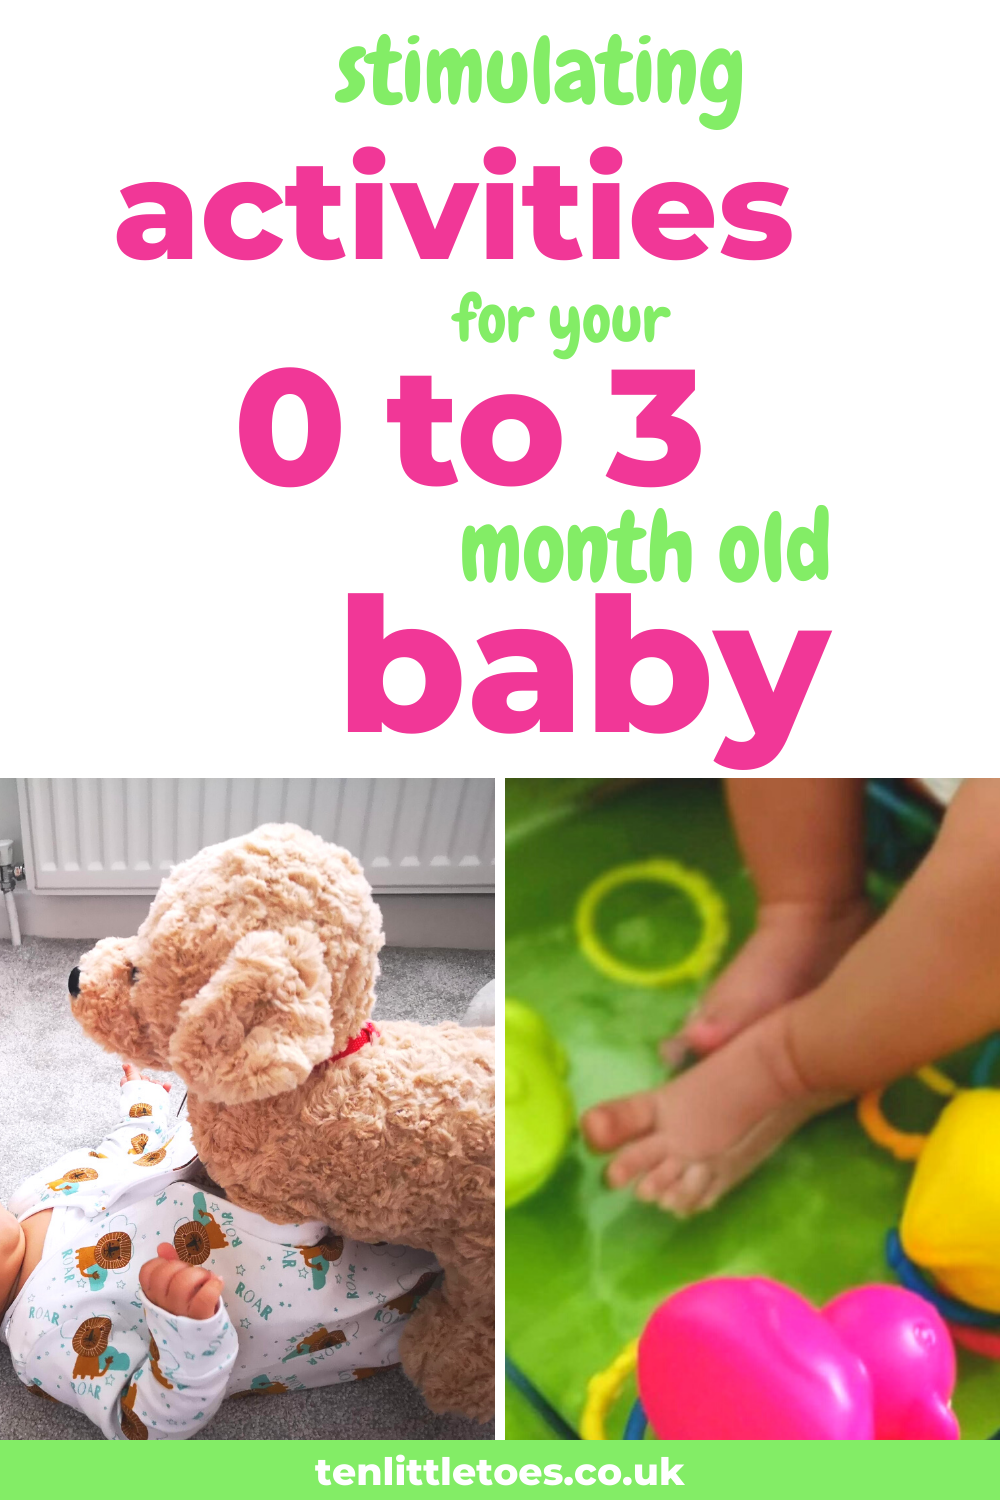 03 Month Old Activities in 2020 Infant activities, Cool